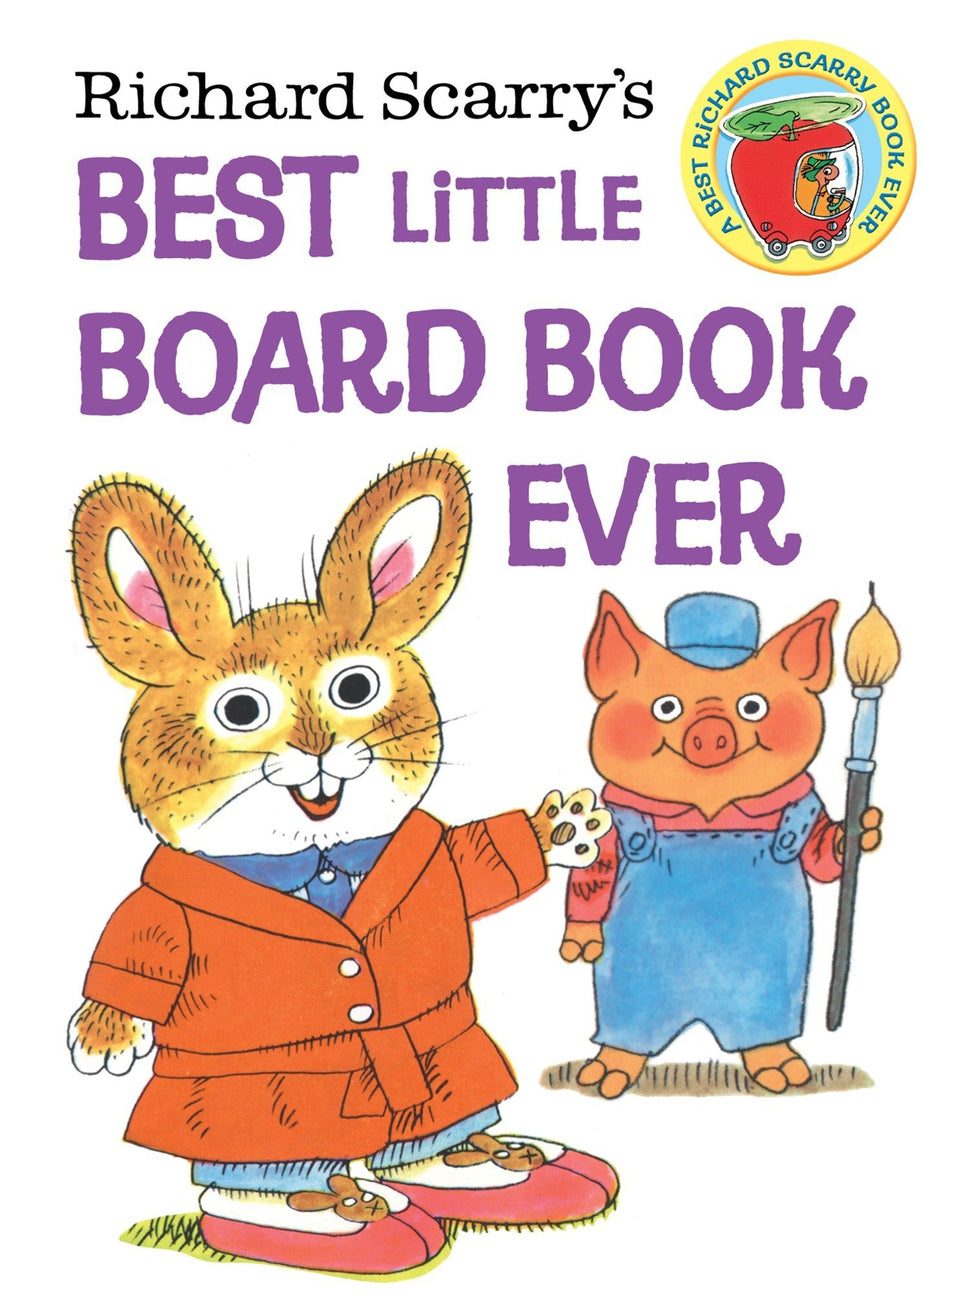 Richard Scarry's: Best Little Board Book Ever